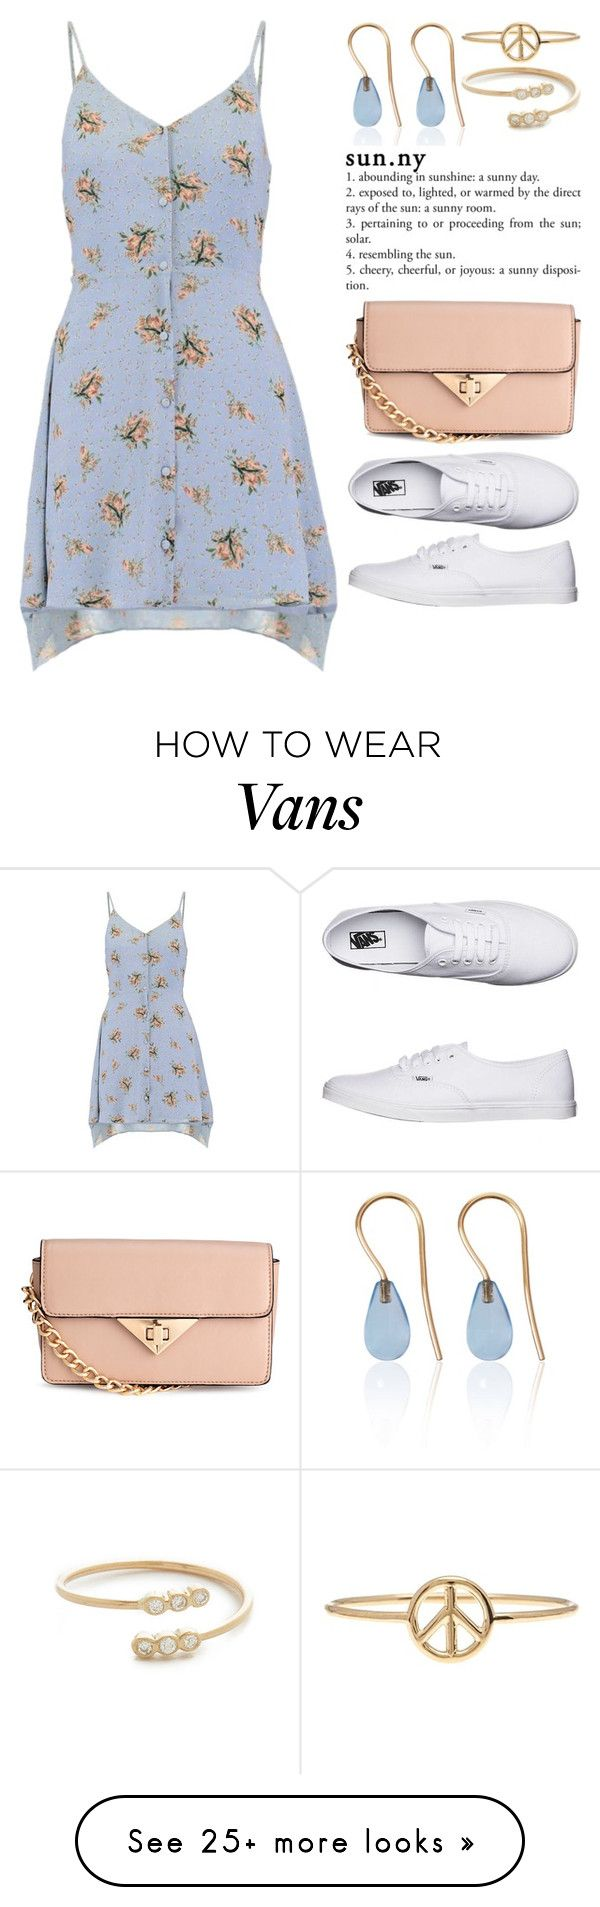 """Ready for Summer 3698"" by boxthoughts on Polyvore featuring Vans, Love Is, Zoë Chicco and Aurélie Bidermann"